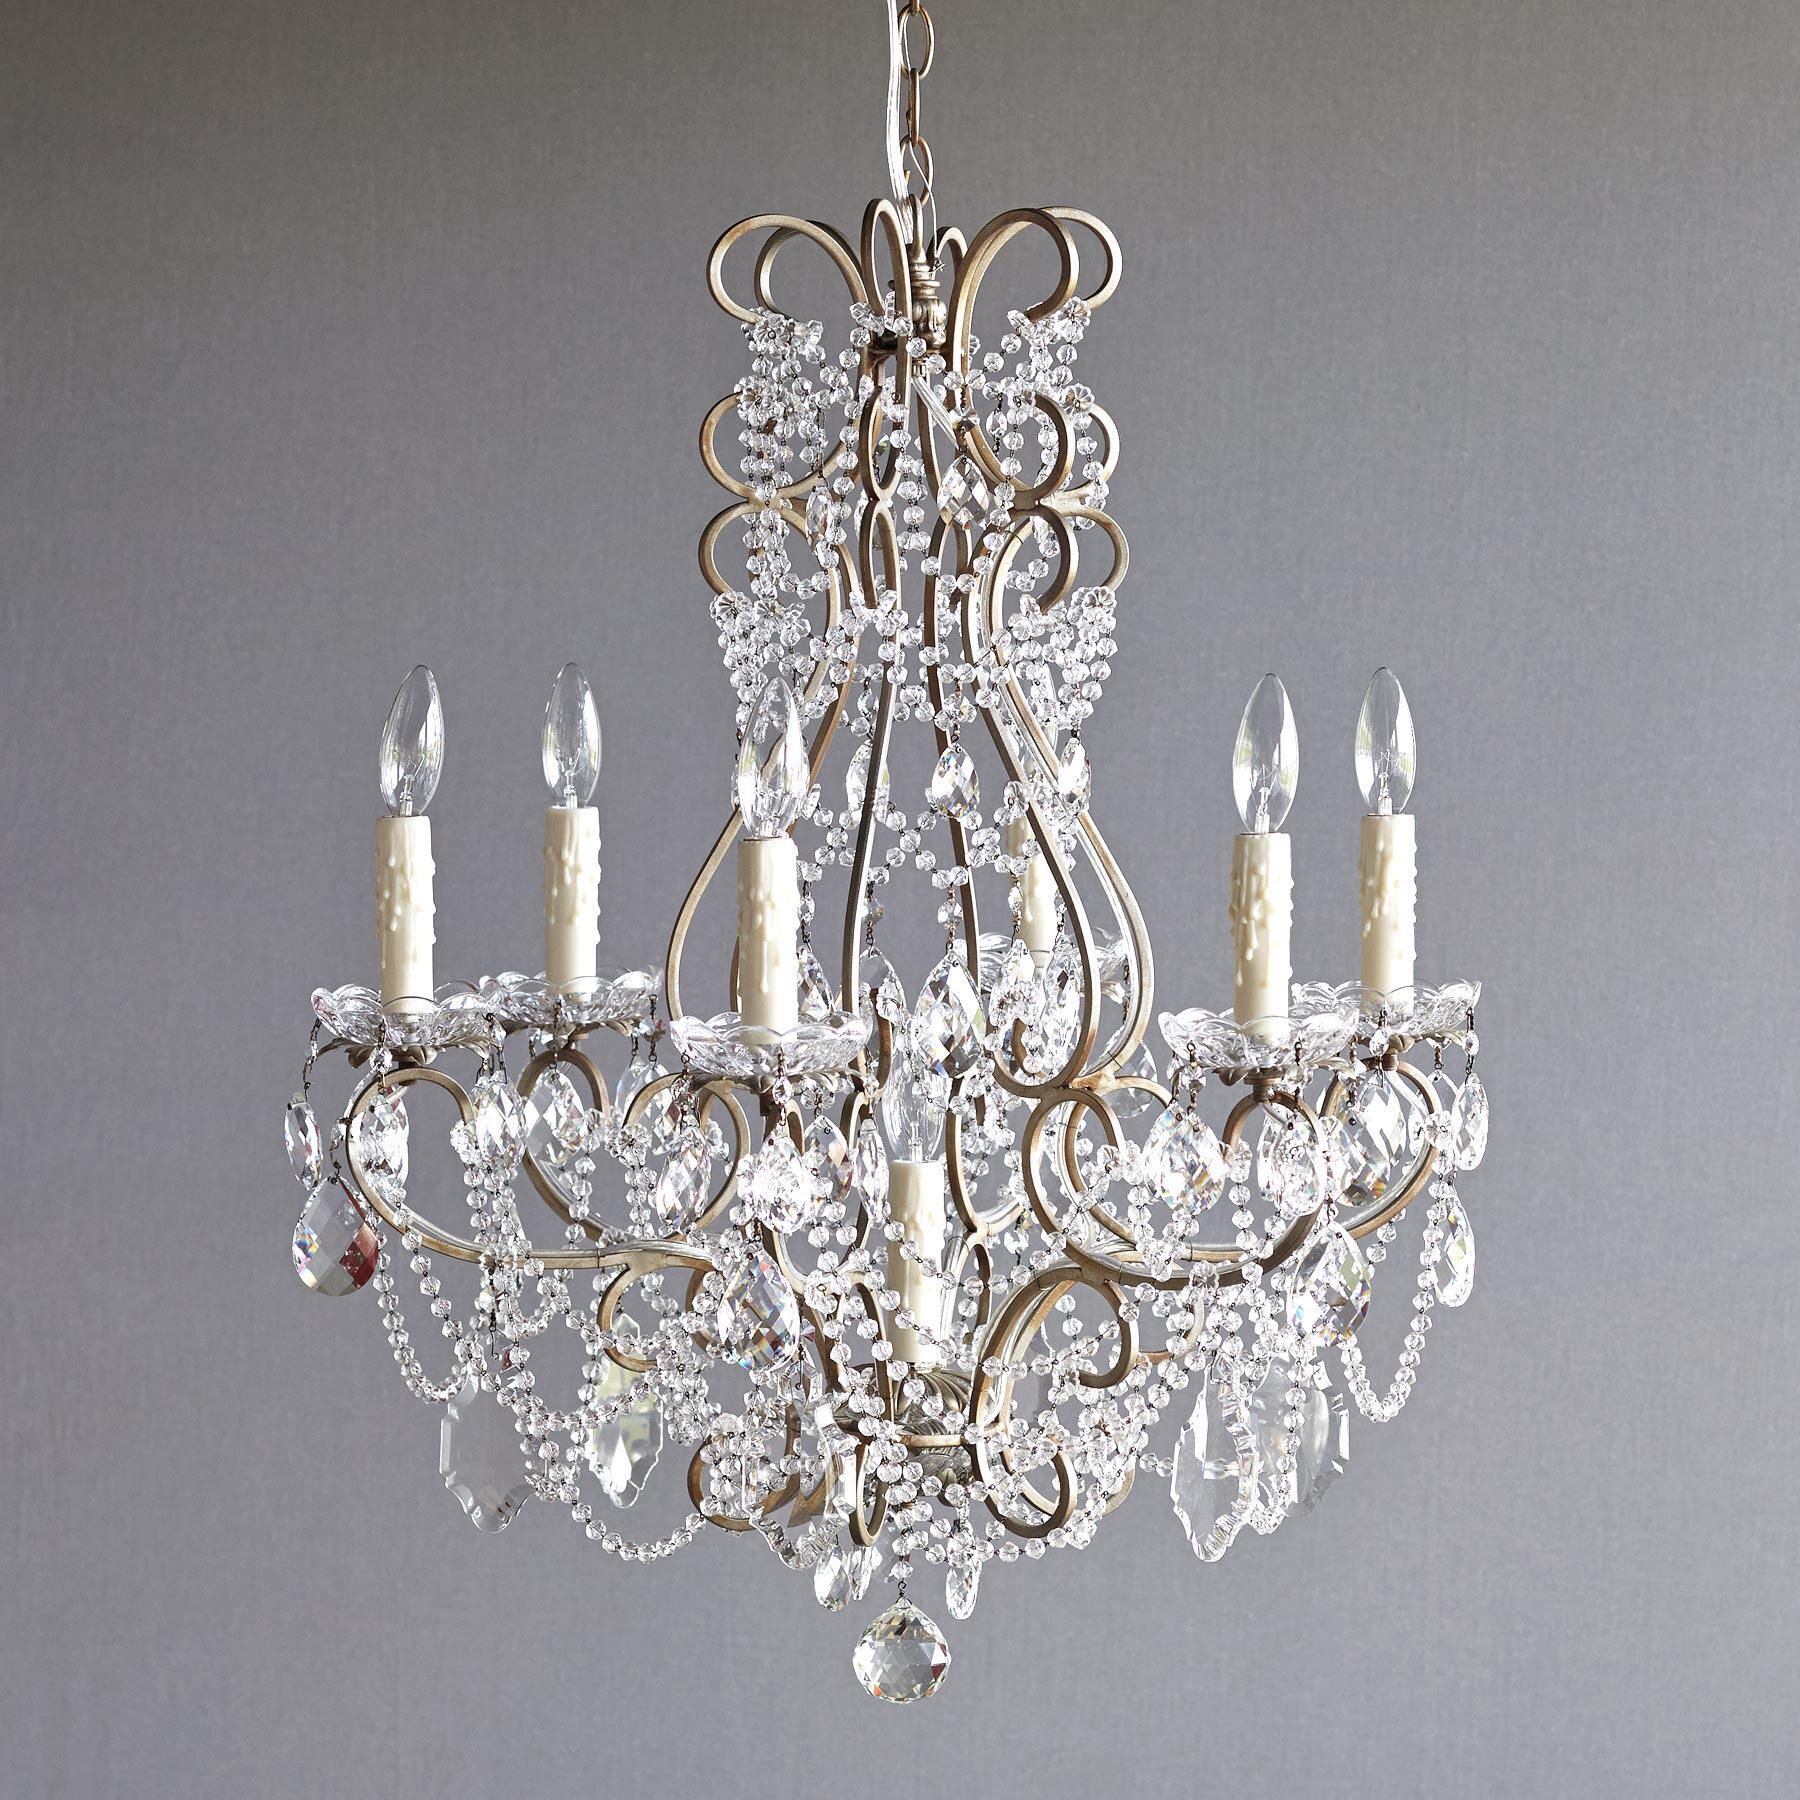 SYMPHONY OF LIGHT CHANDELIER: View 1